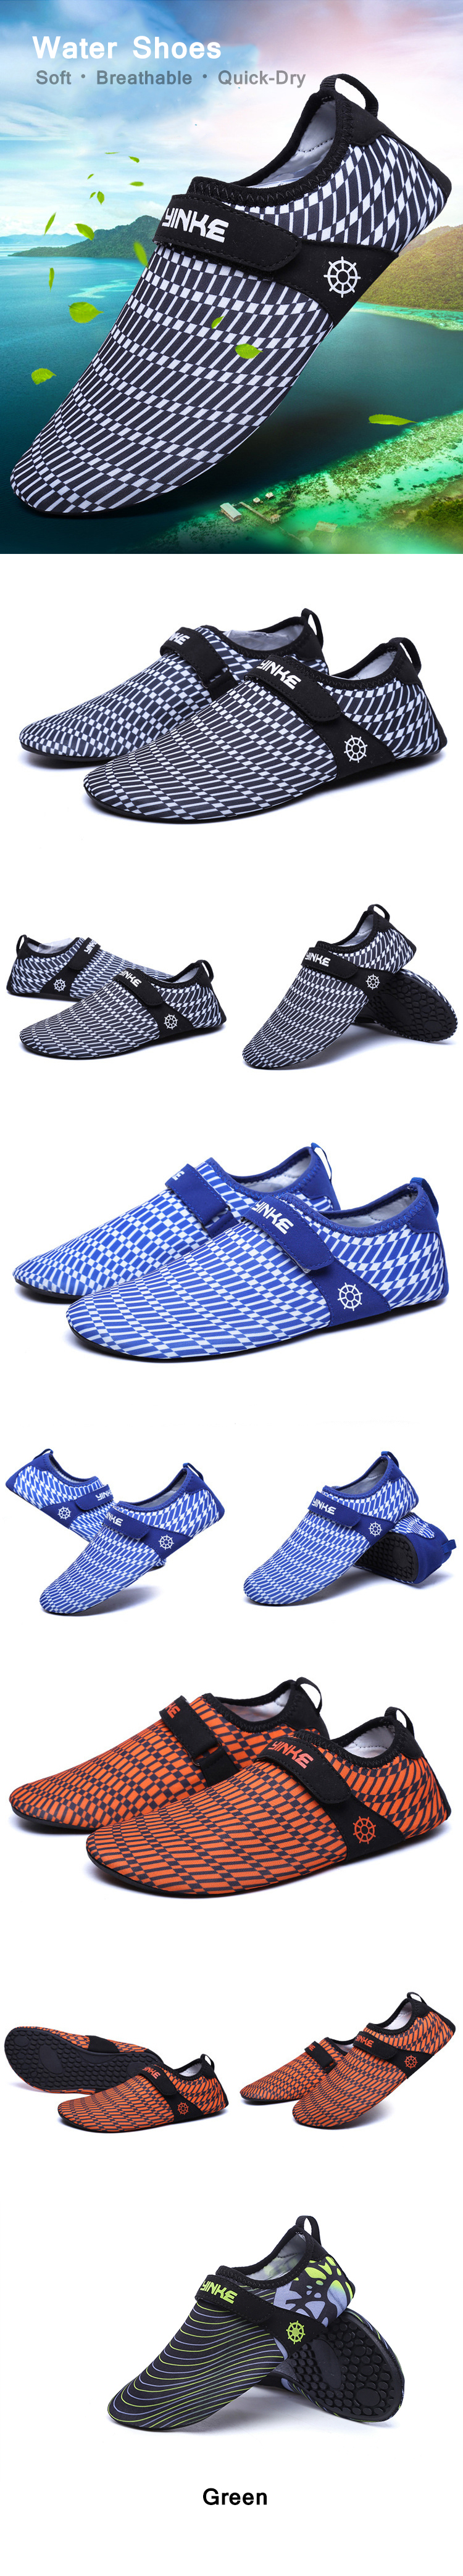 0069bc1d91eb men quick-dry breathable swim snorkeling beach shoes barefoot slip ...